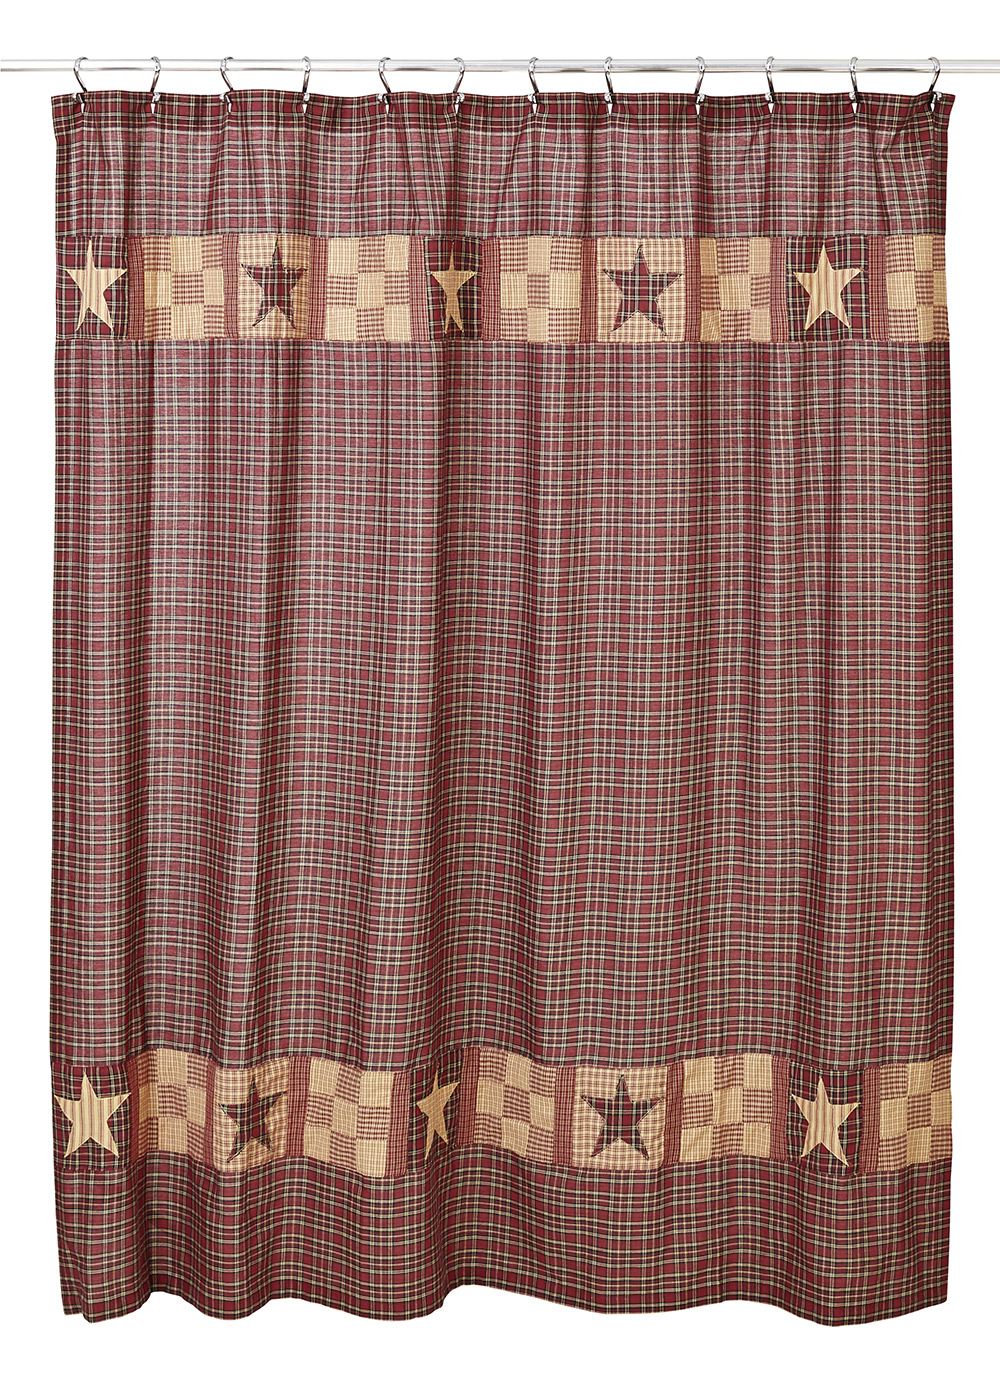 Bradford Star Shower Curtain, by Olivia\'s Heartland - The Weed Patch